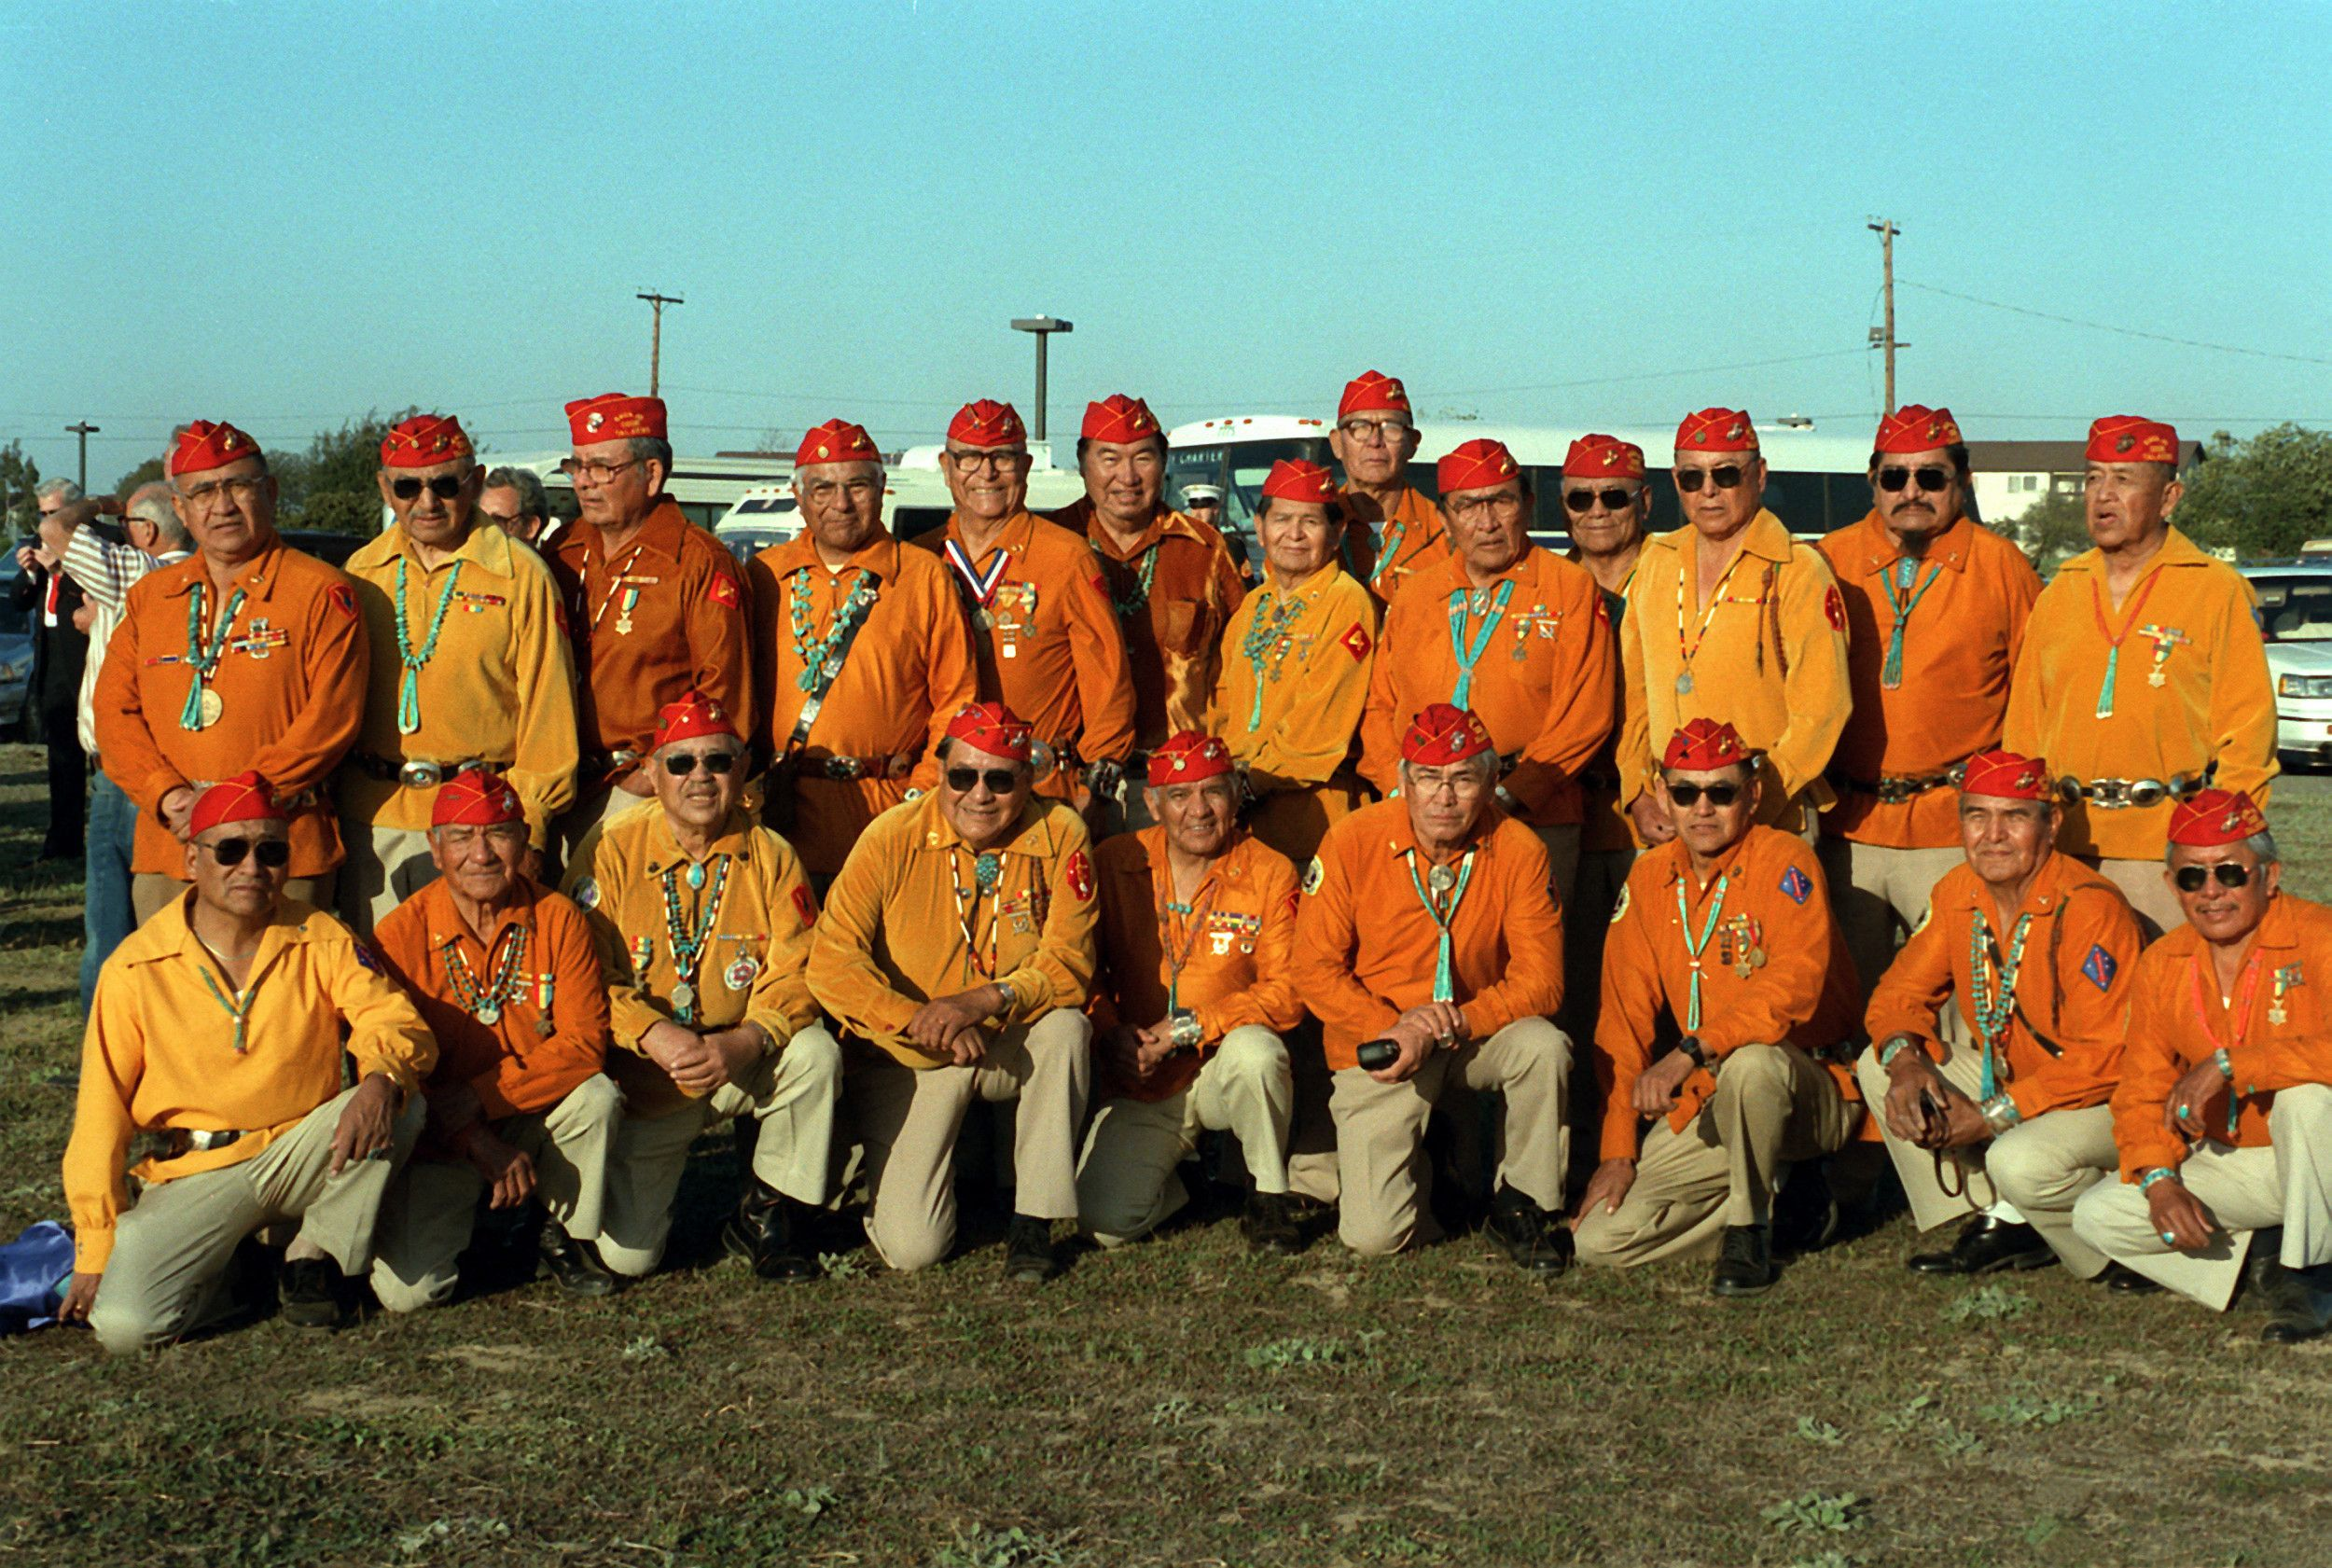 Members of the 3rd and 4th Division Navajo code talker platoons of World War II (1987)